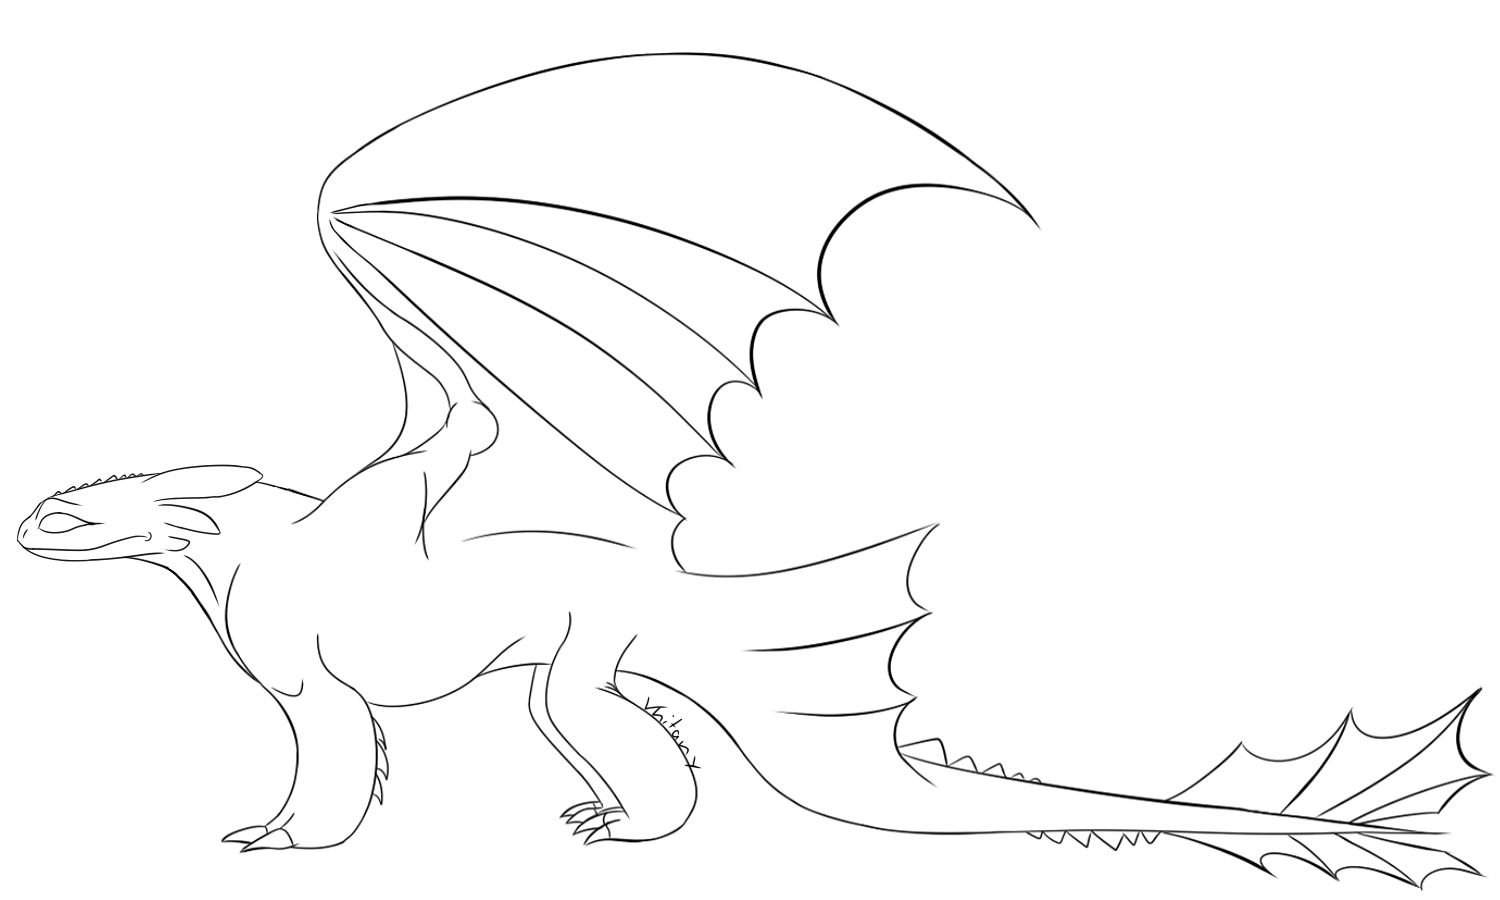 toothless dragon coloring pages toothless lineart by targonreddragon on deviantart dragon coloring toothless pages